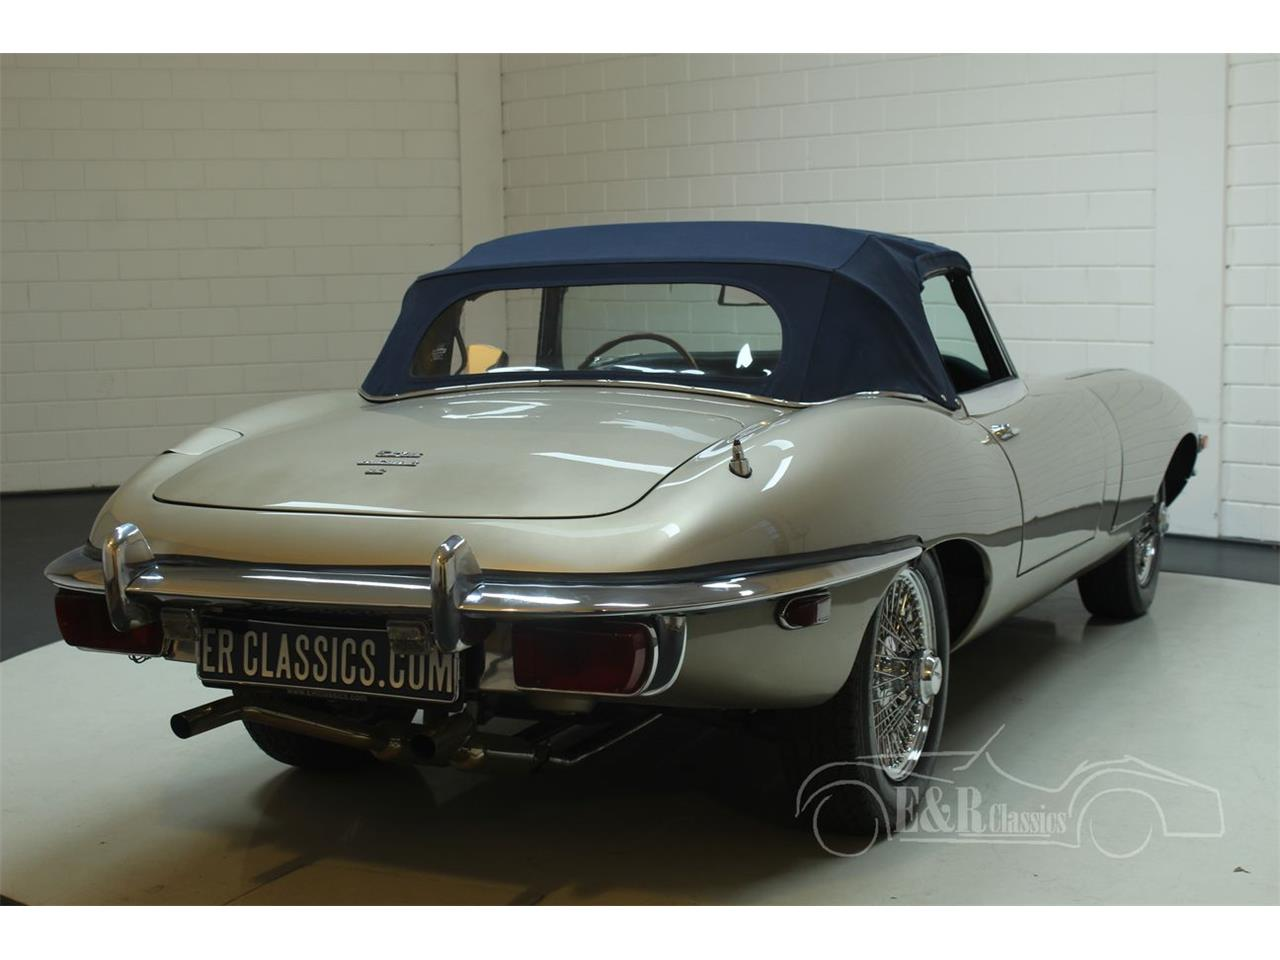 Large Picture of '70 Jaguar E-Type - $112,750.00 Offered by E & R Classics - PH40